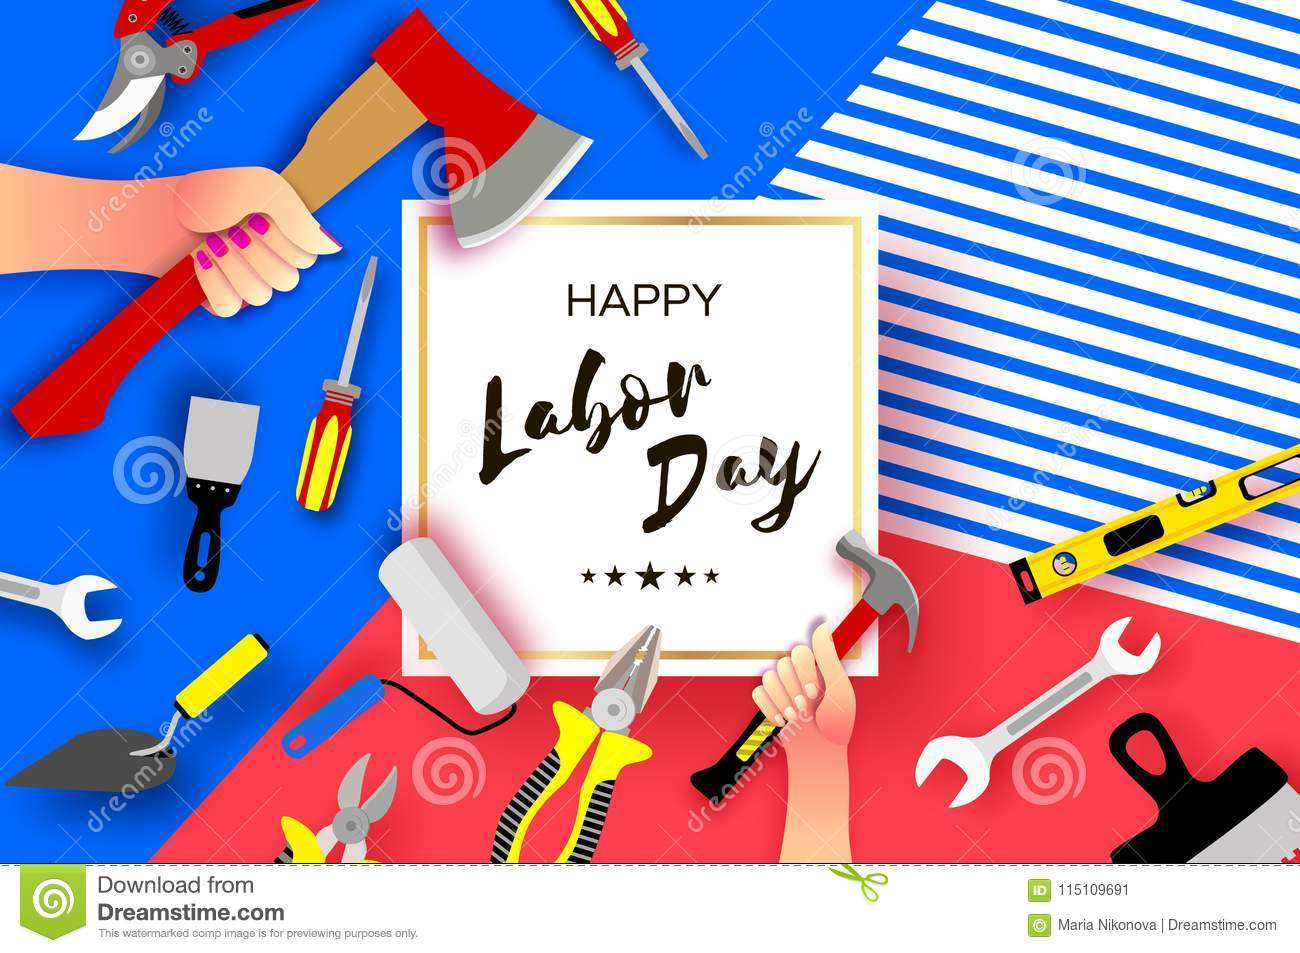 Happy Labor Day Greetings Card For National International Holiday